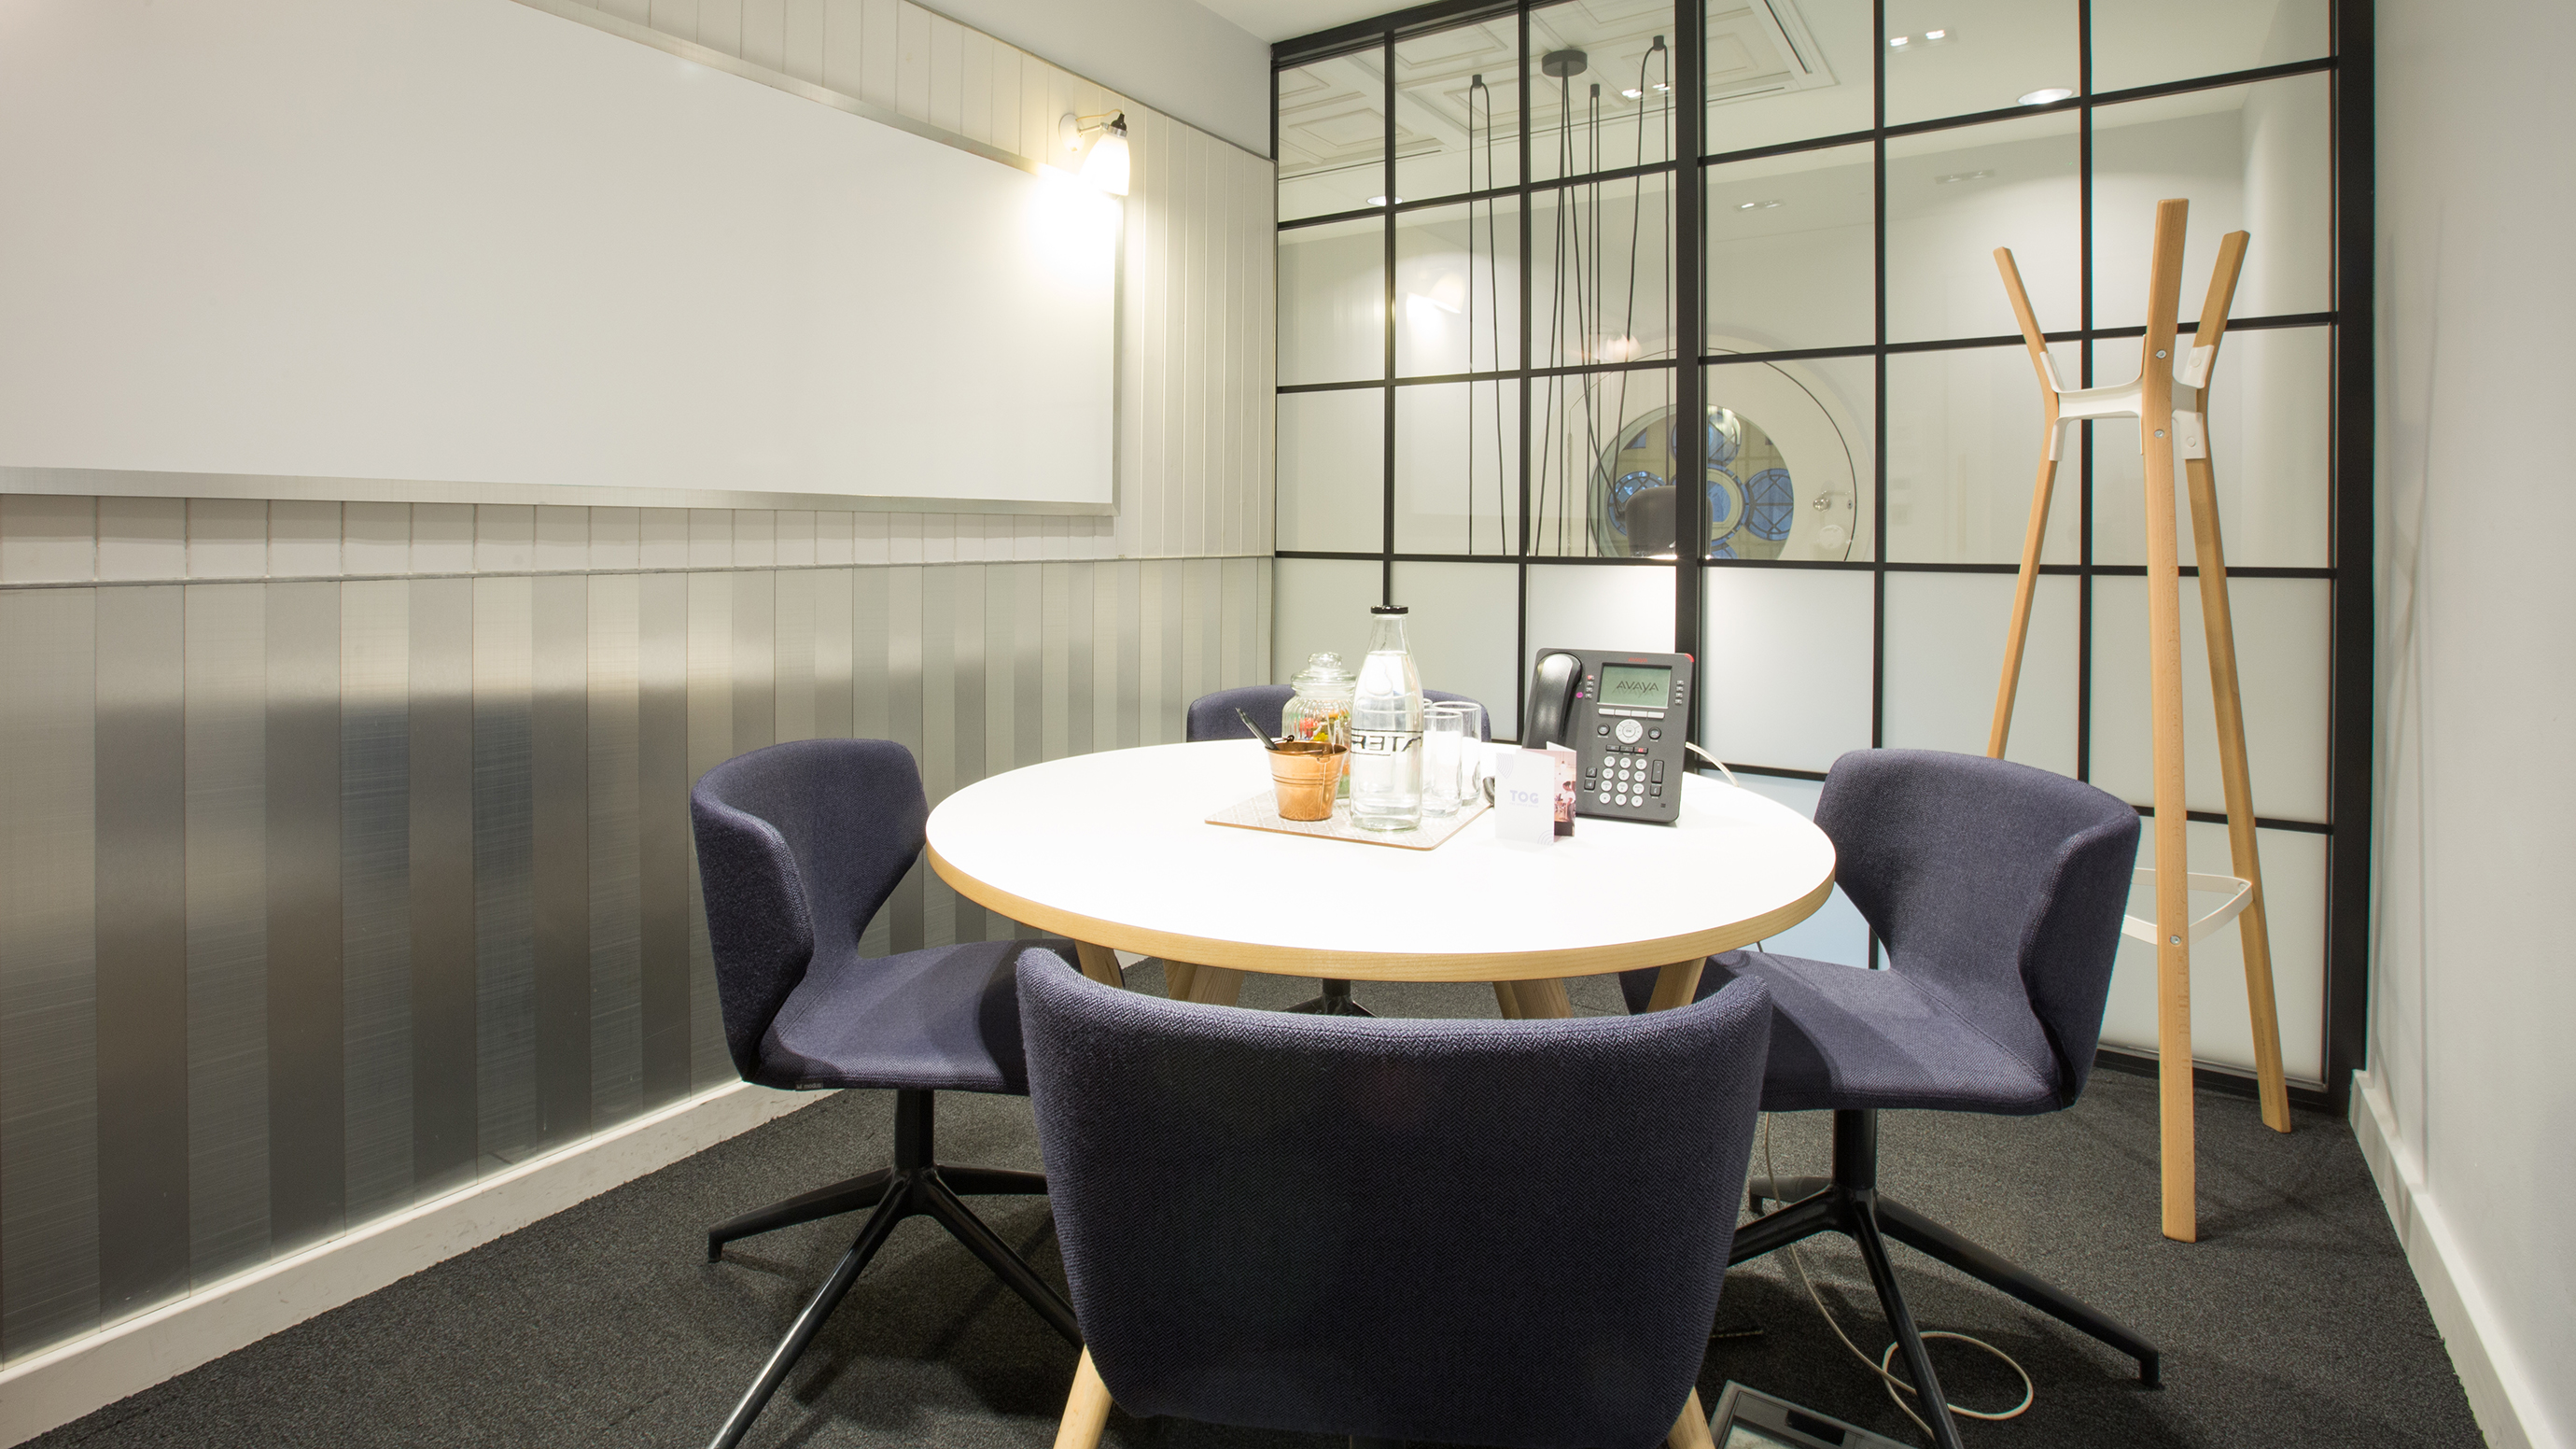 Small meeting room with white round table blue chairs and coat rack at TOG building 50 Liverpool Street London